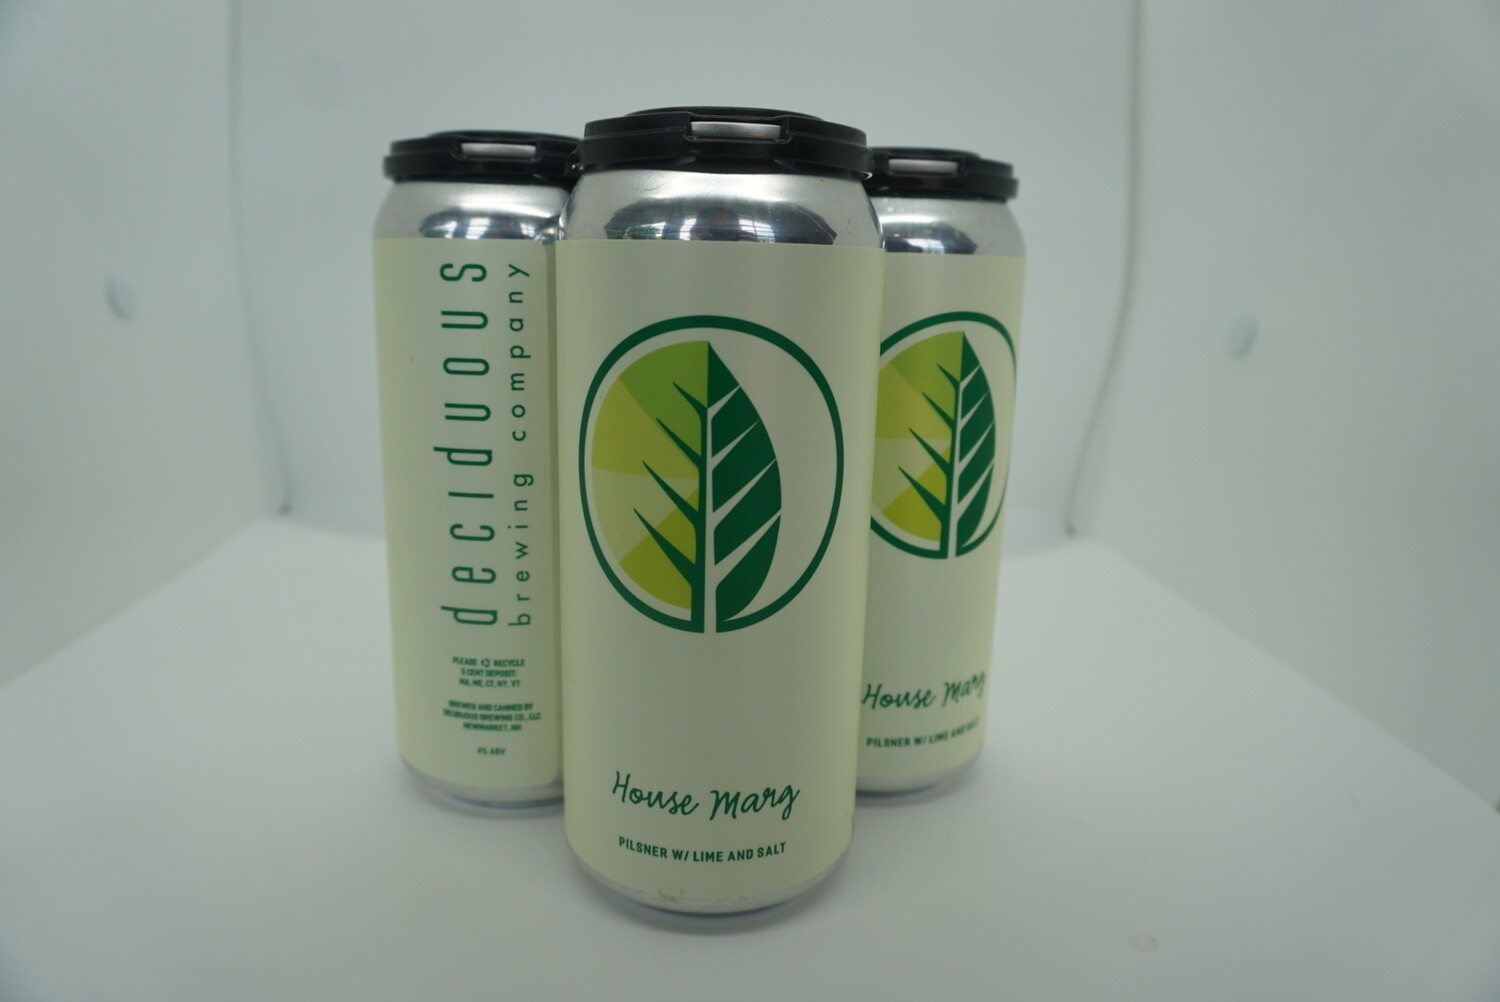 Deciduous - House Marg - Pilsner - 5% ABV - 4 Pack